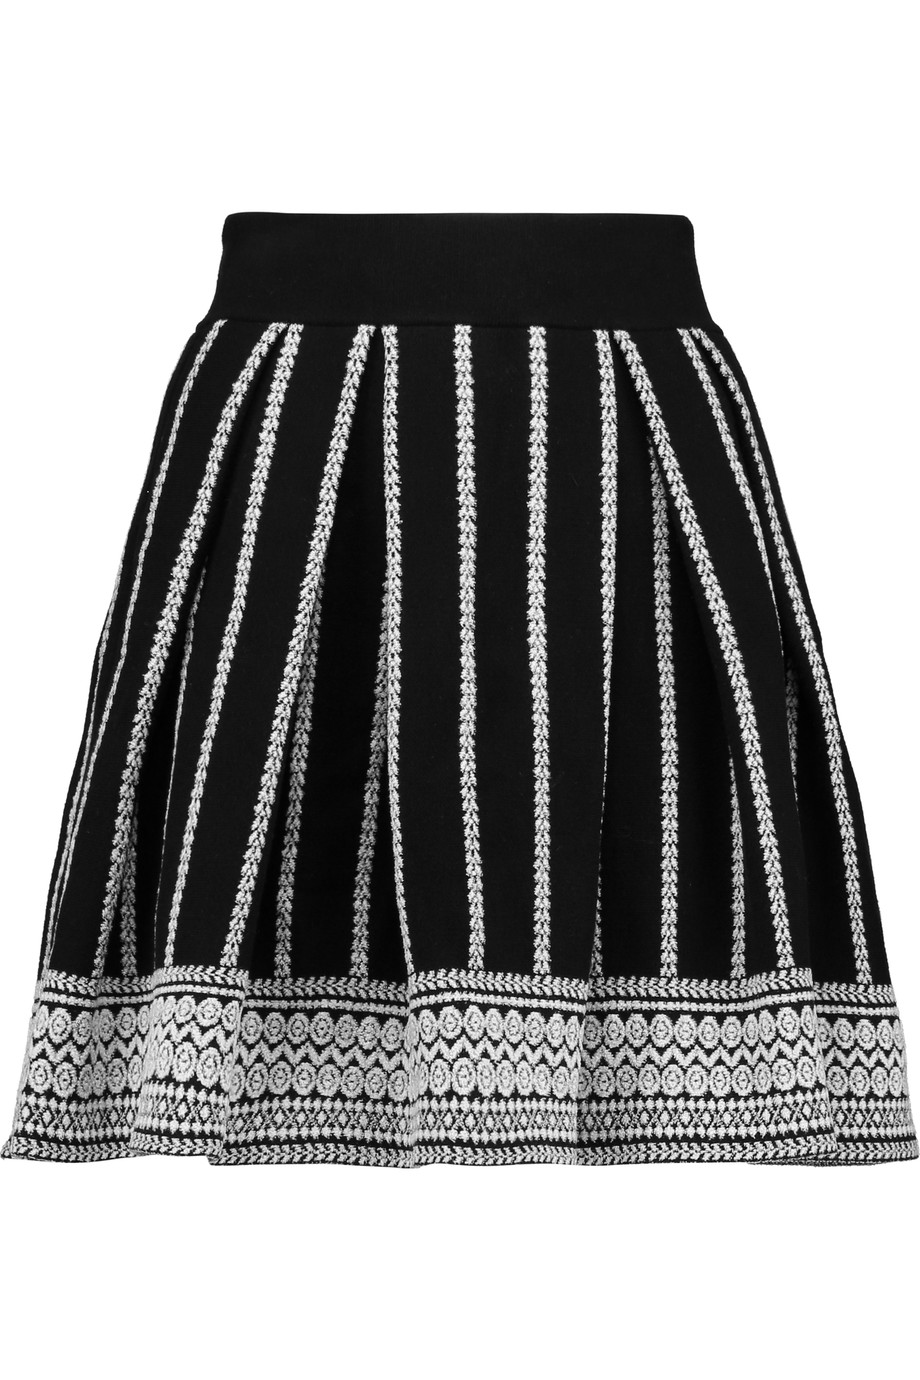 Maje mini skirt.jpg